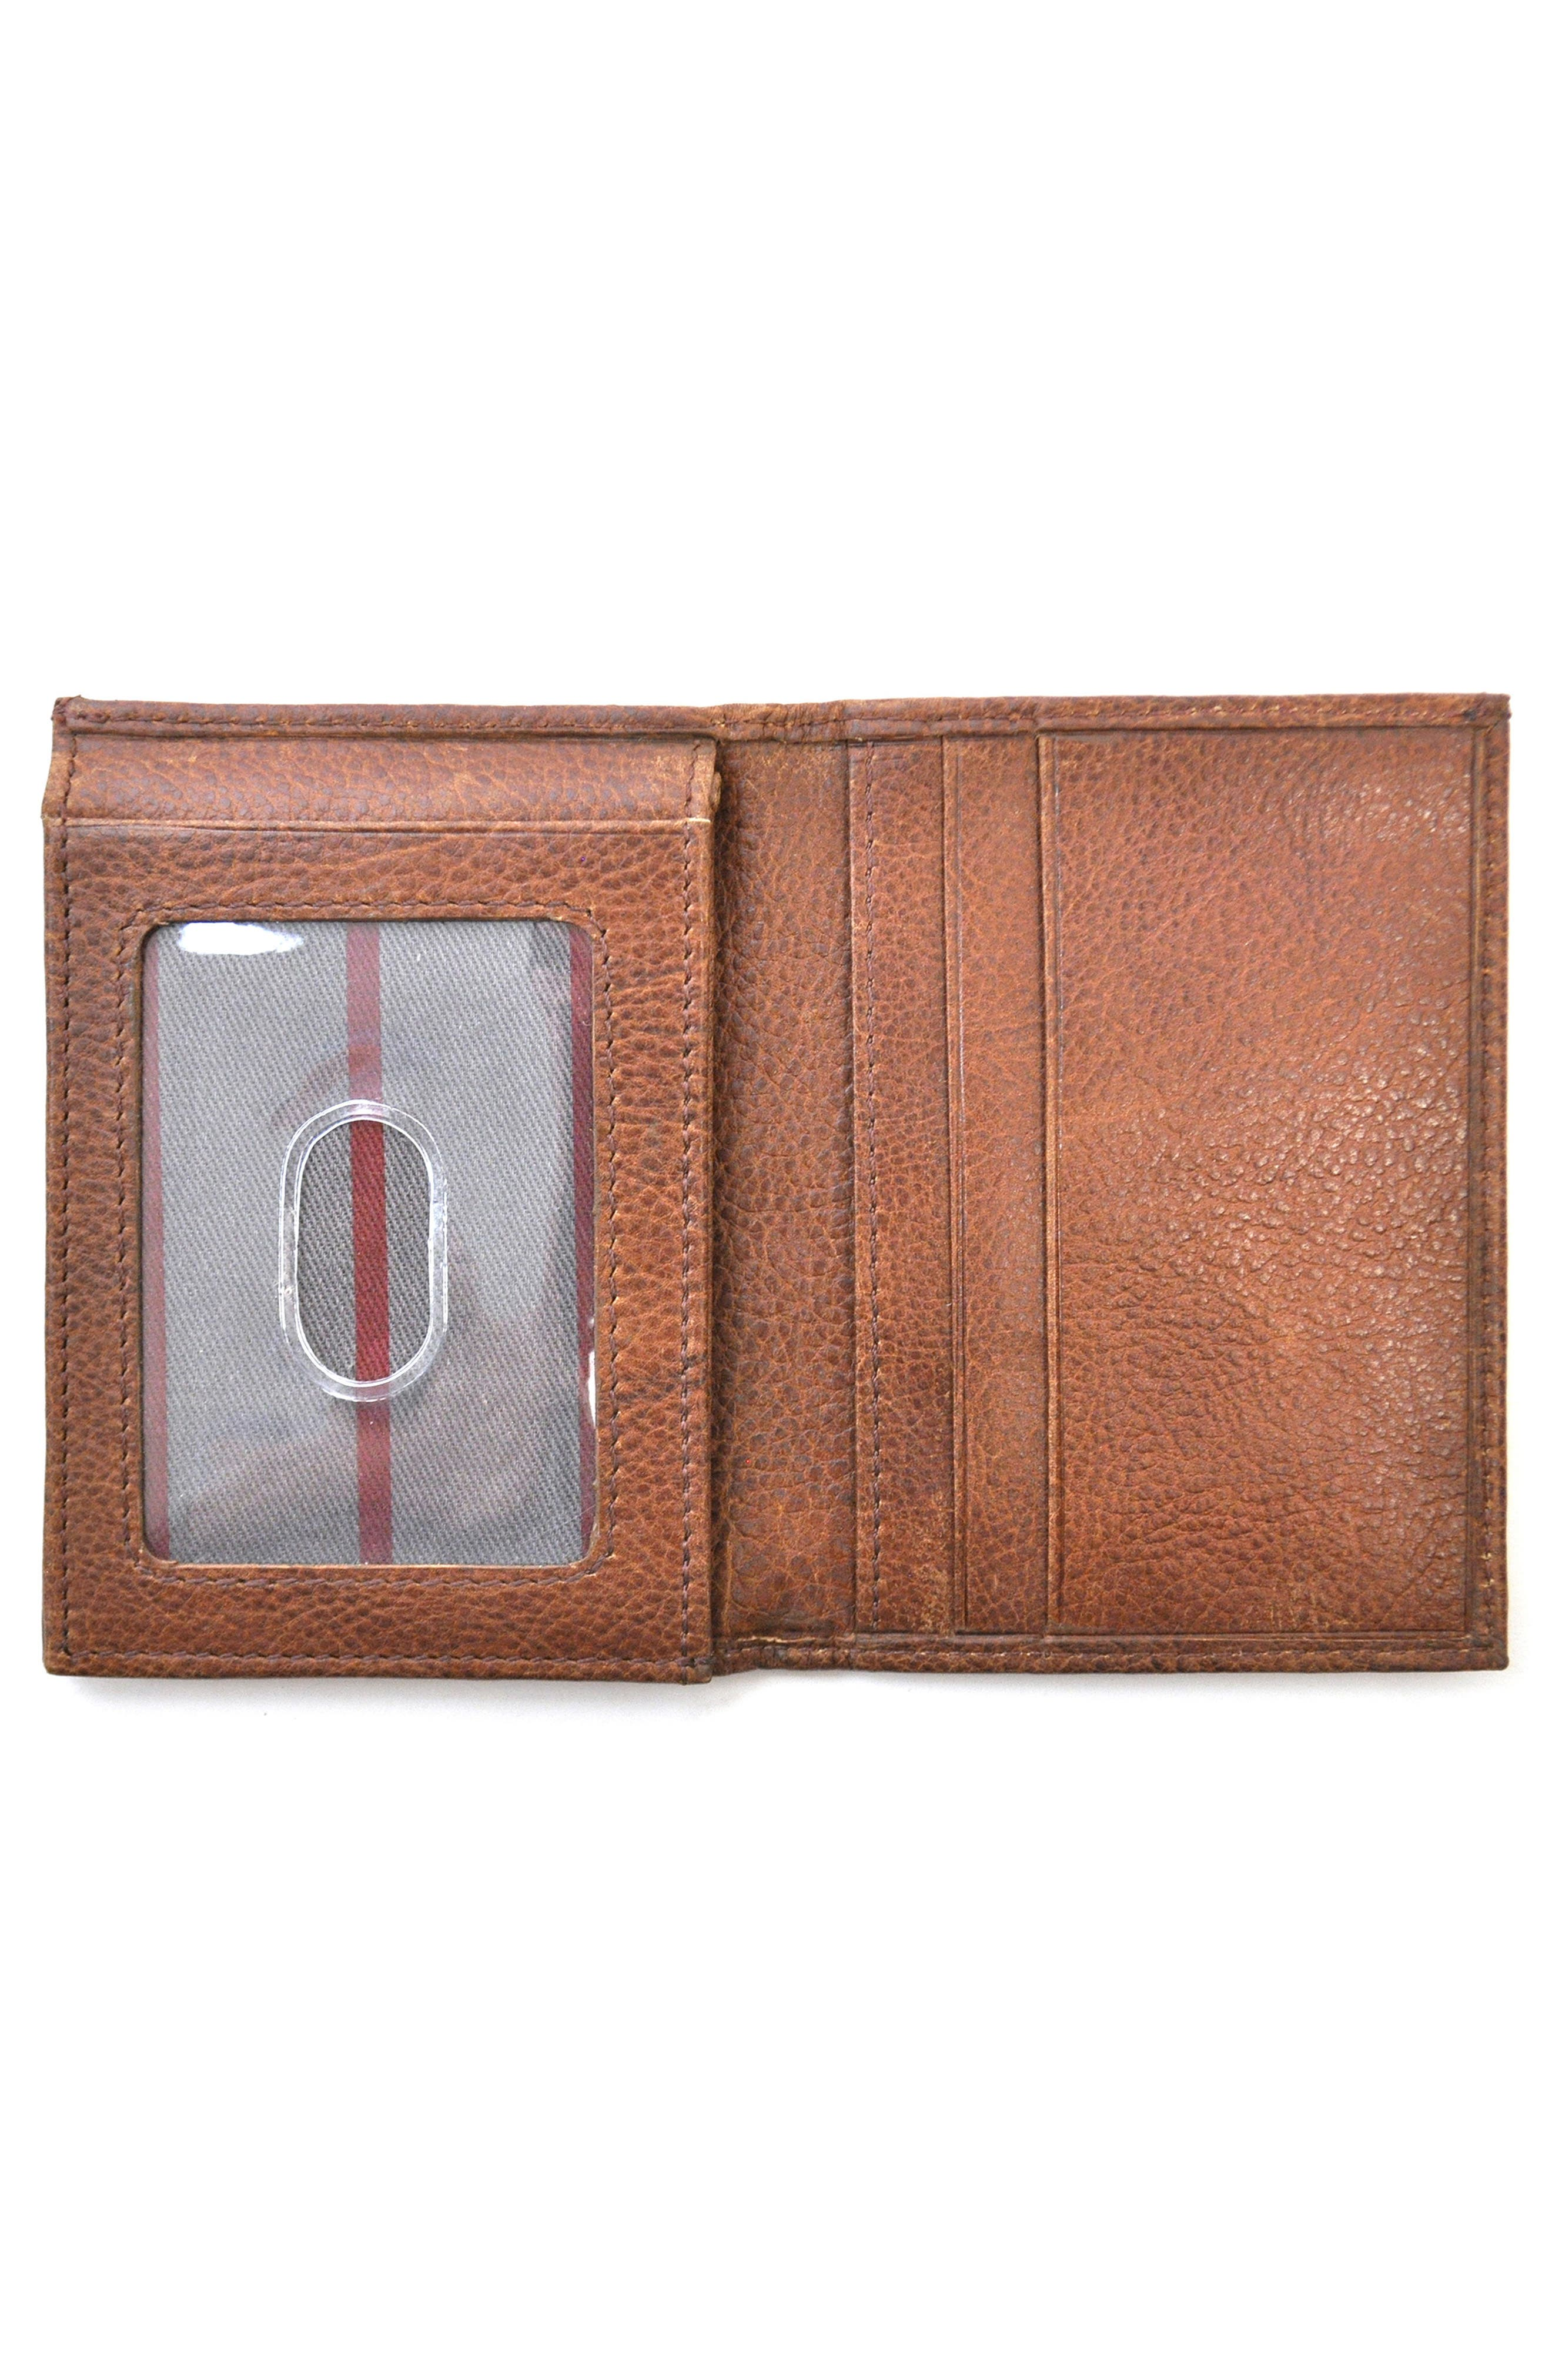 Triple Play Leather L-Fold Wallet,                             Alternate thumbnail 5, color,                             202